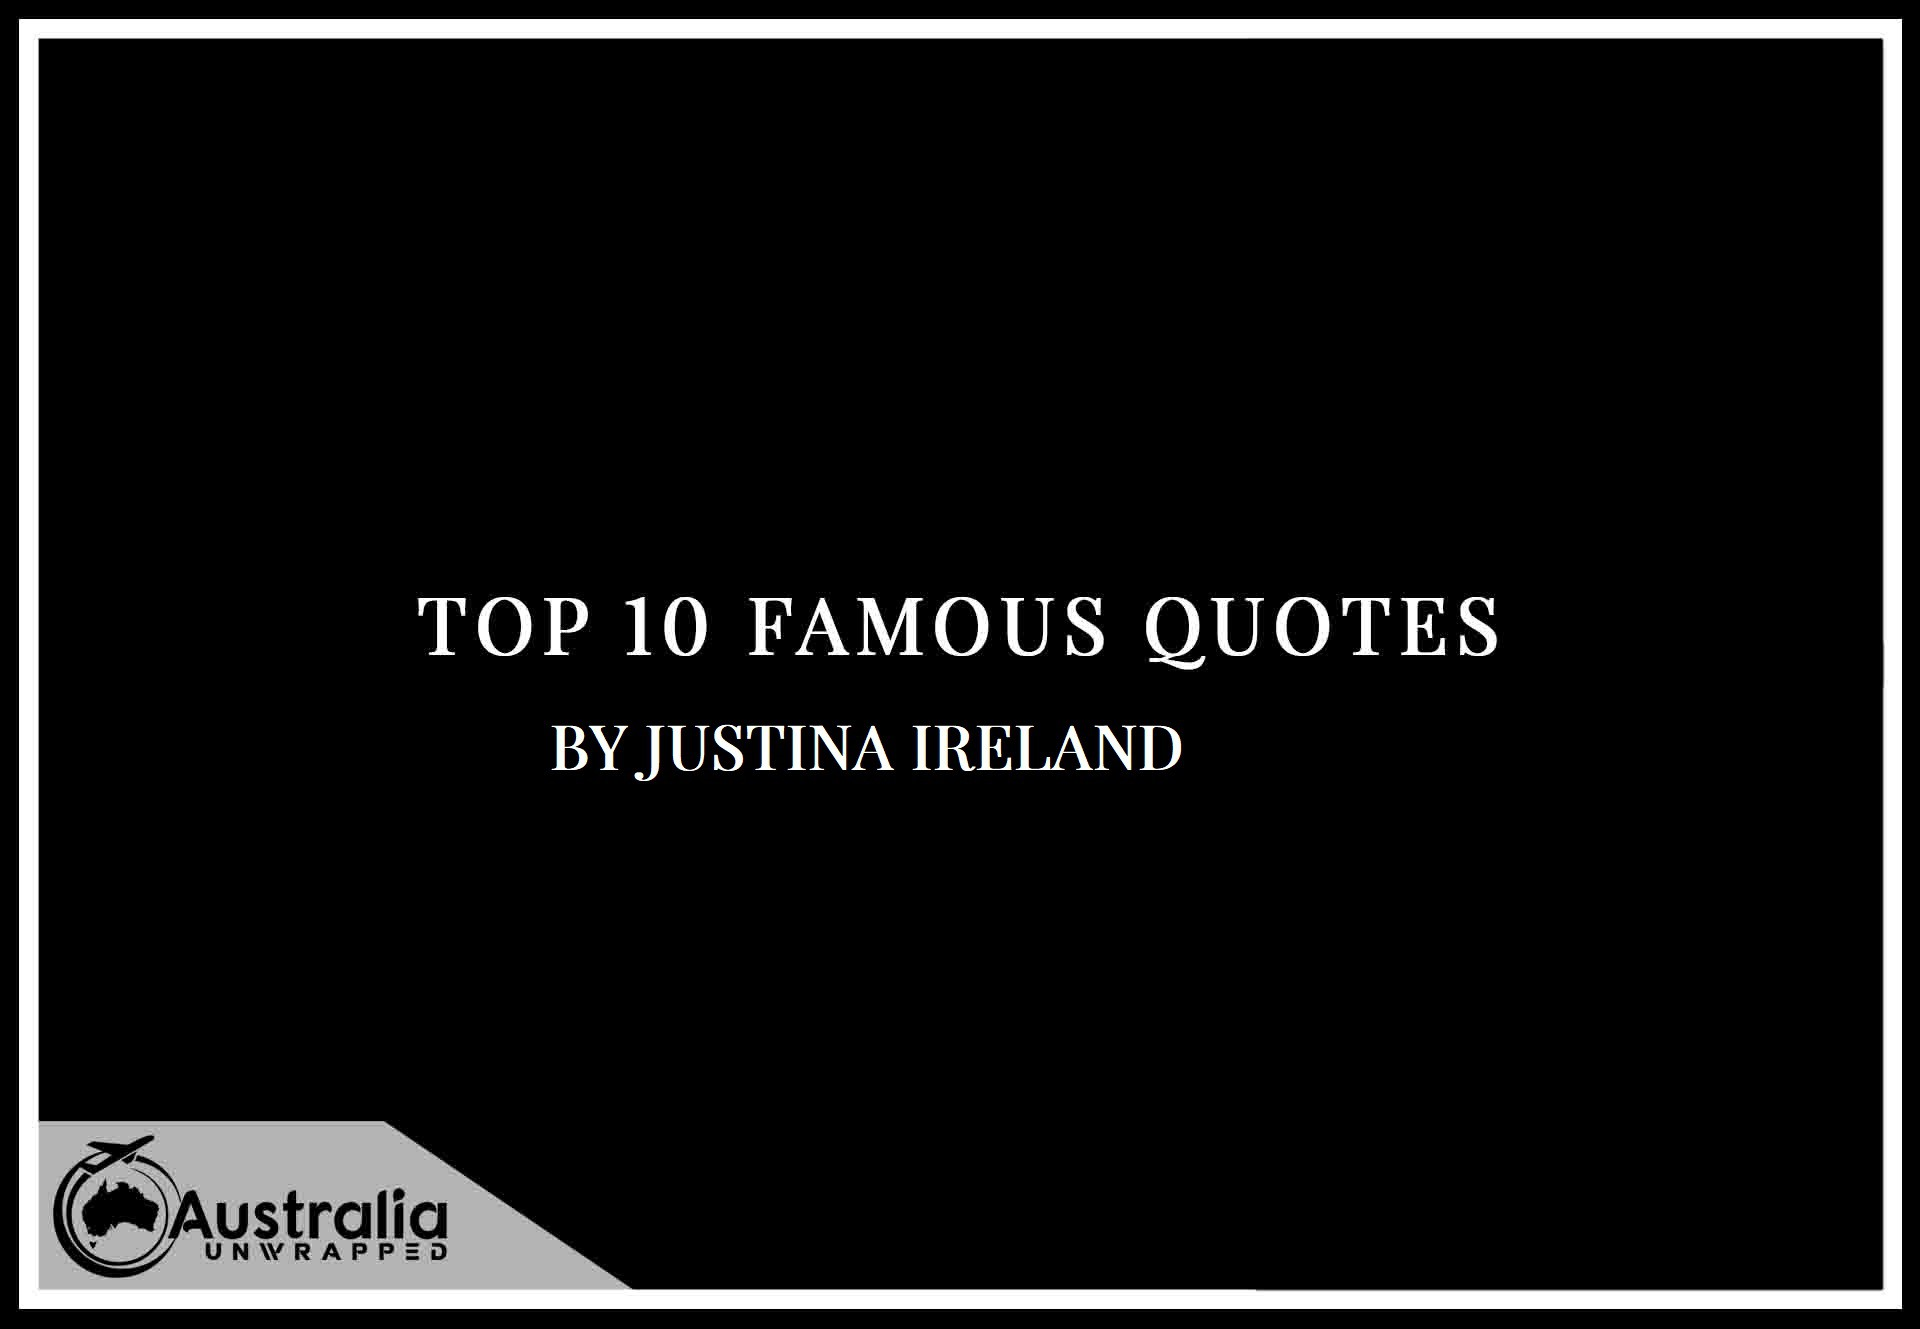 Top 10 Famous Quotes by Author Justina Ireland